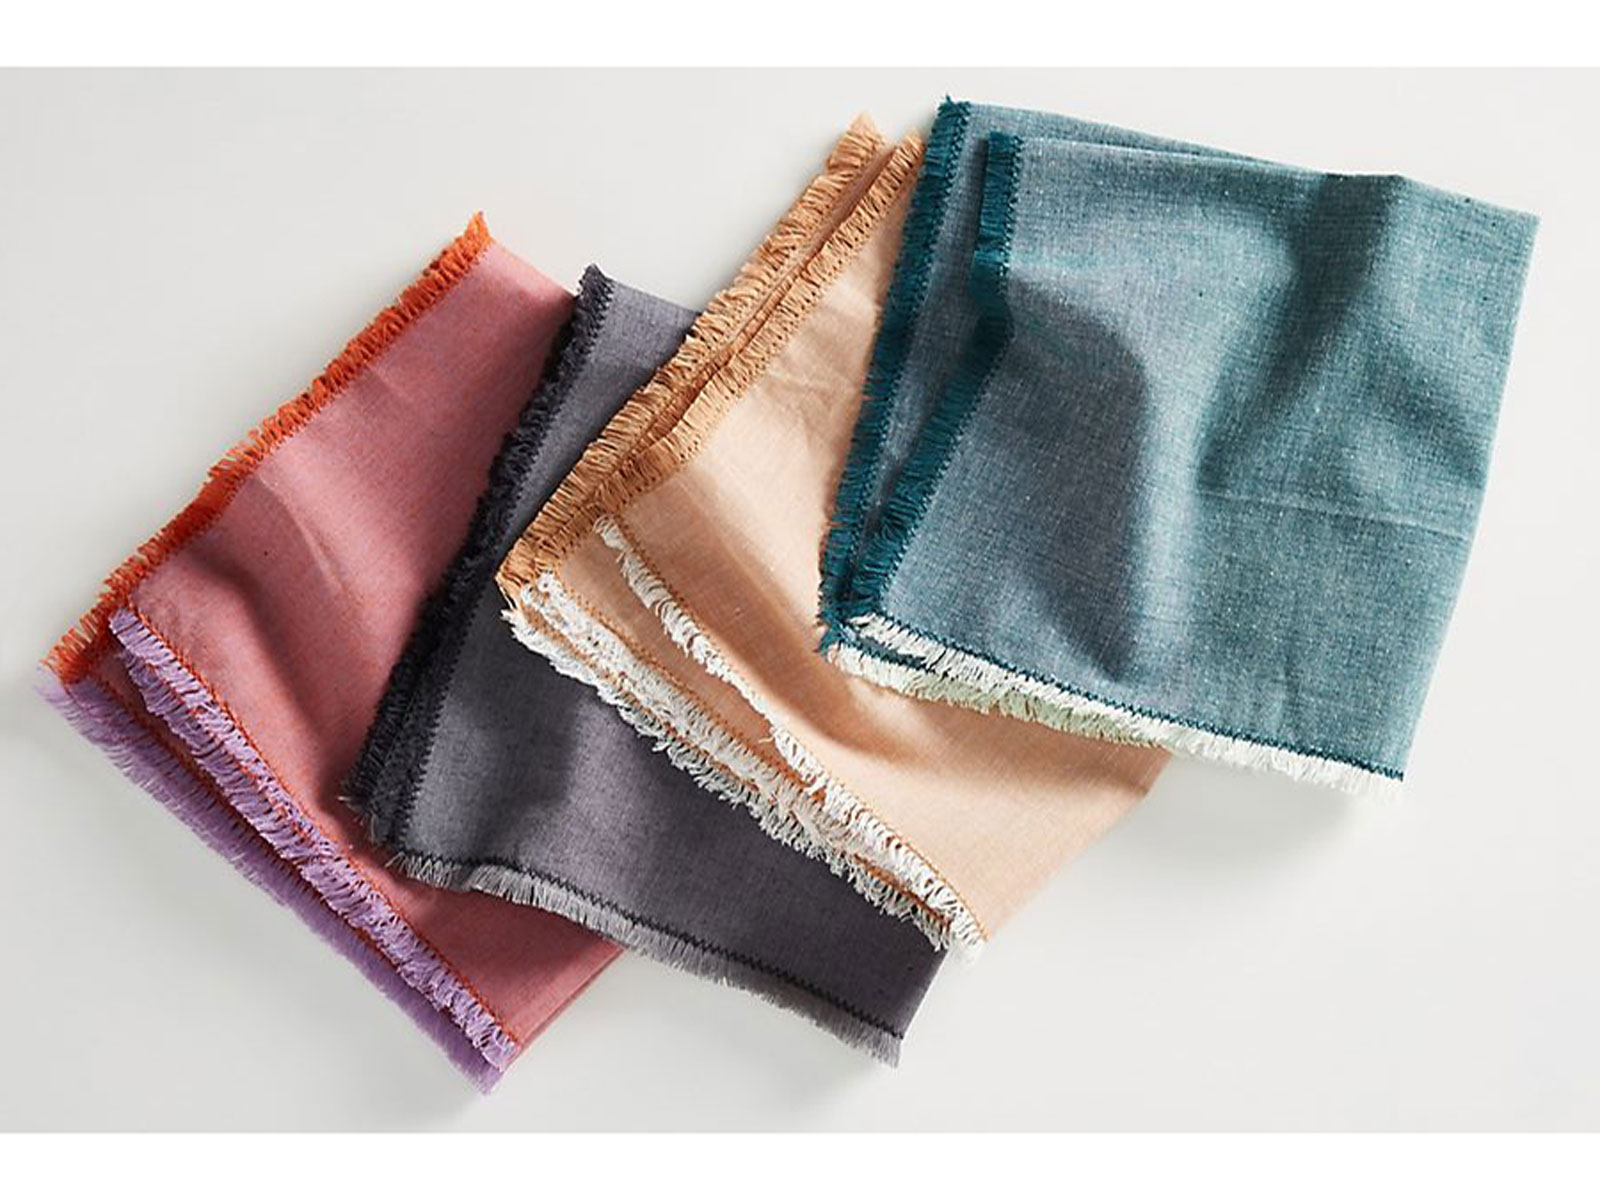 Anthropologie cloth napkins